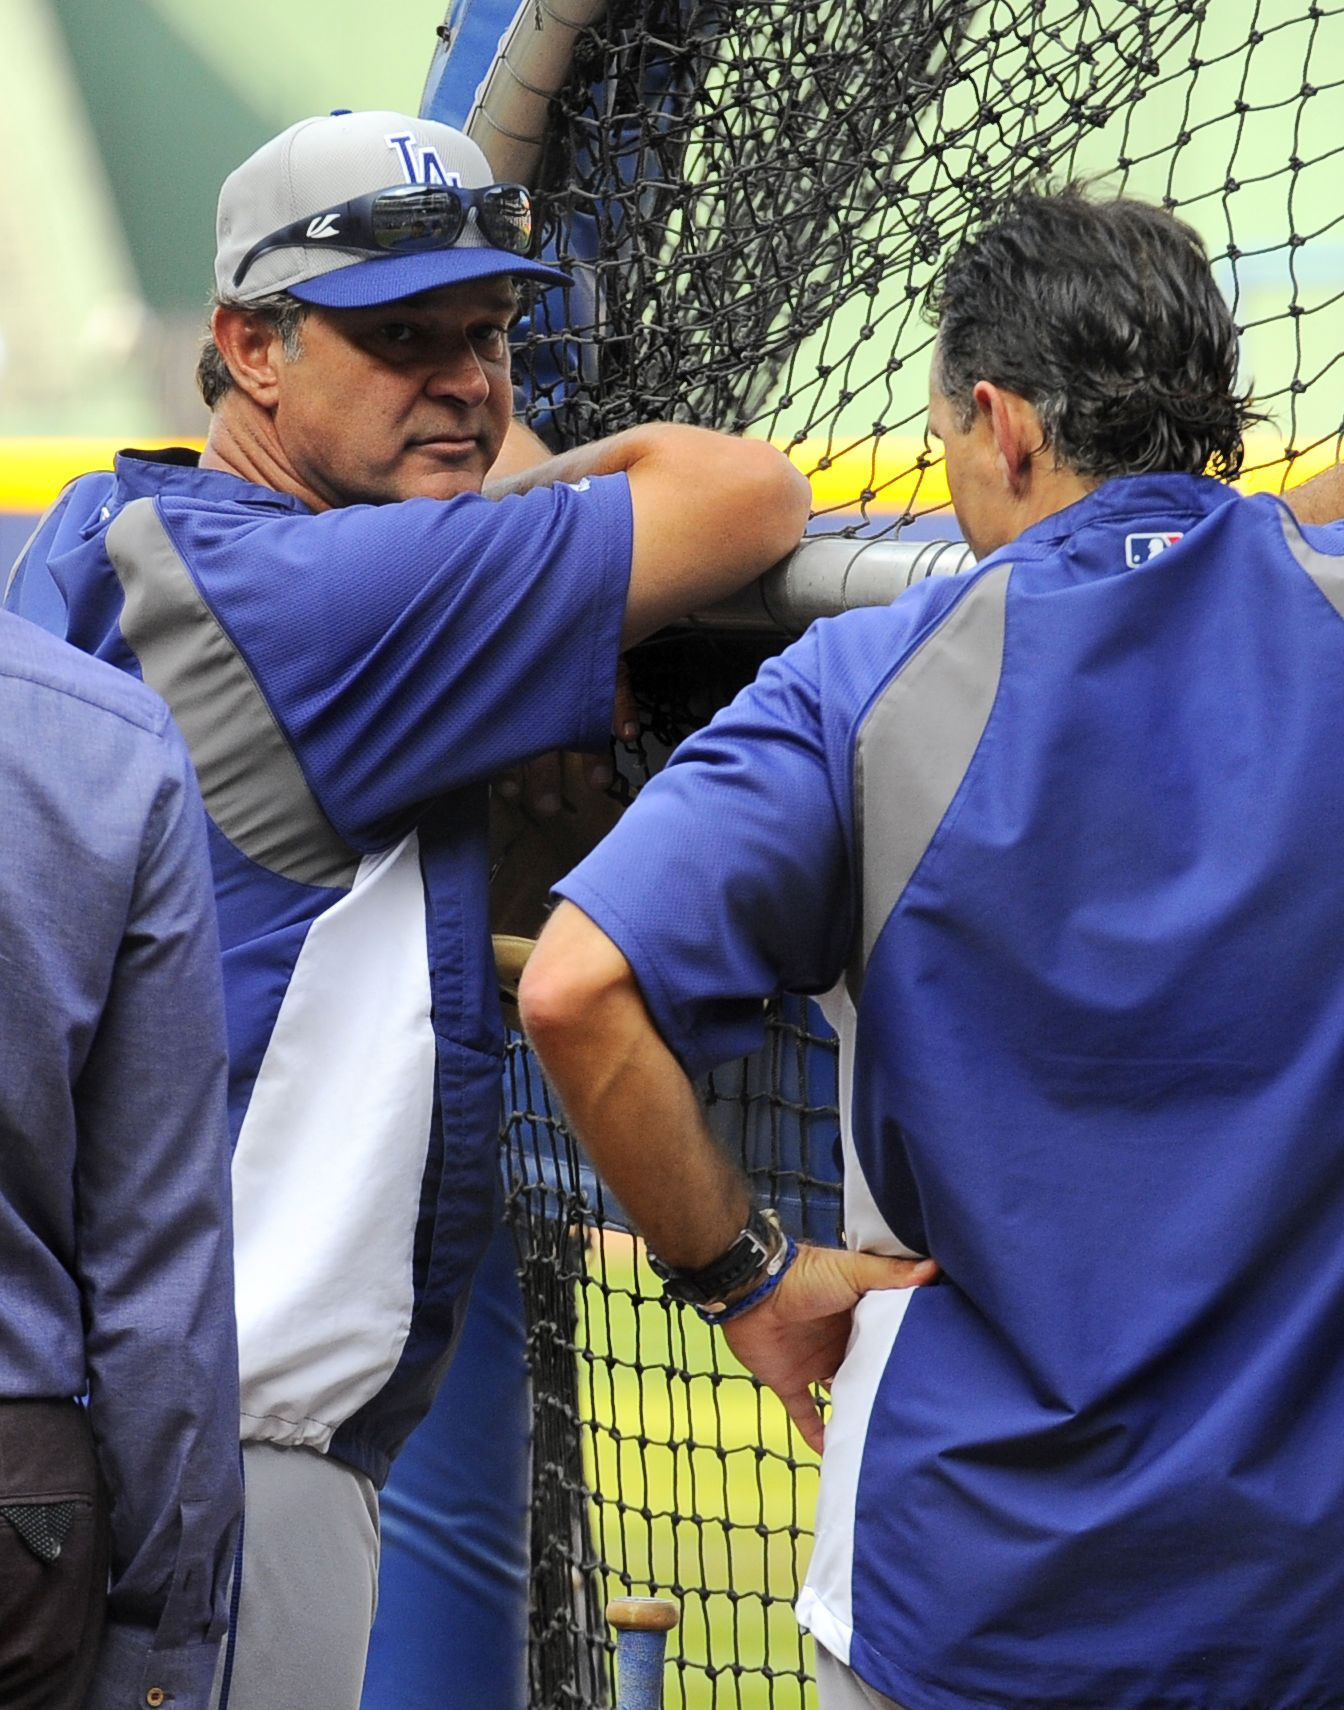 CrowdCam Hot Shot: Los Angeles Dodgers manager Don Mattingly watches batting practice prior to game two of the National League divisional series playoff baseball game against the Atlanta Braves at Turner Field. Photo by Dale Zanine